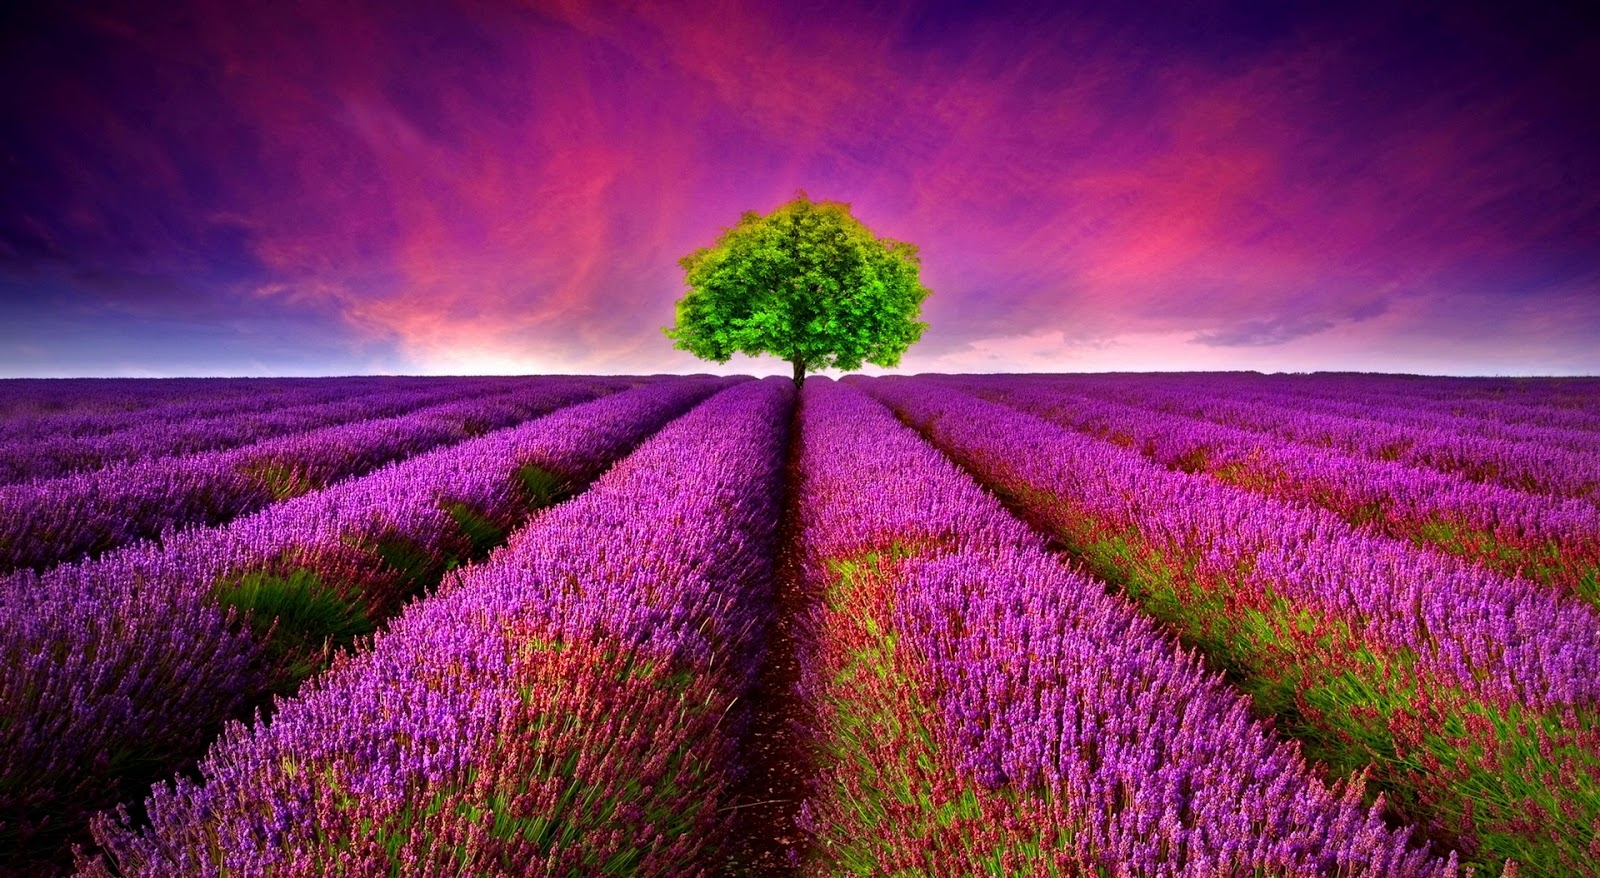 beautiful nature wallpapers collection | most beautiful places in